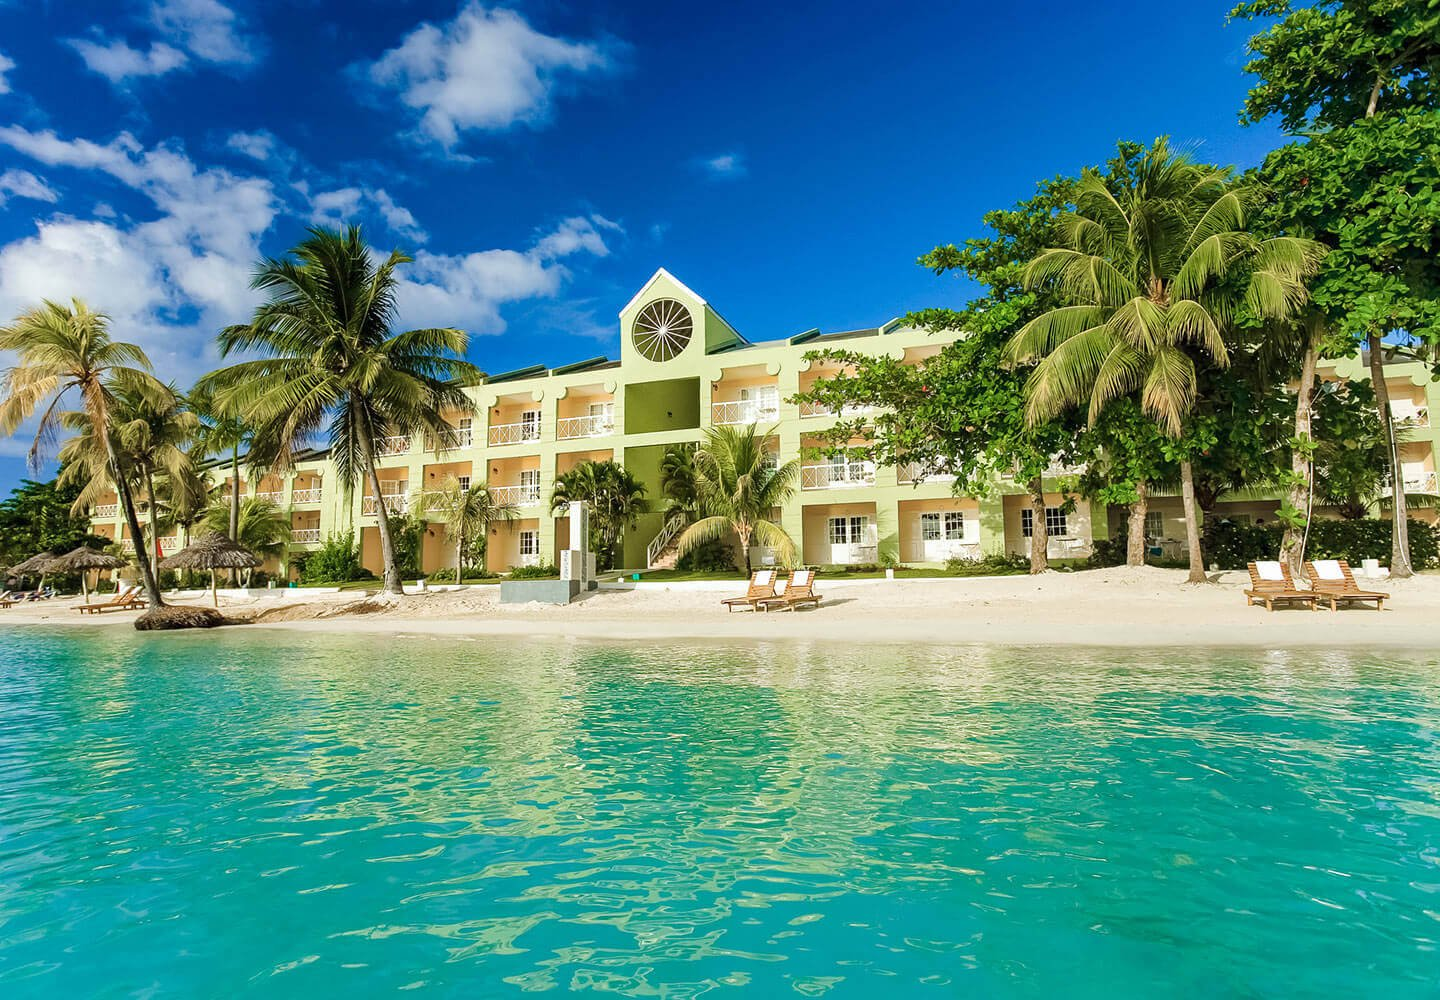 Sandals Negril - Honeymoons